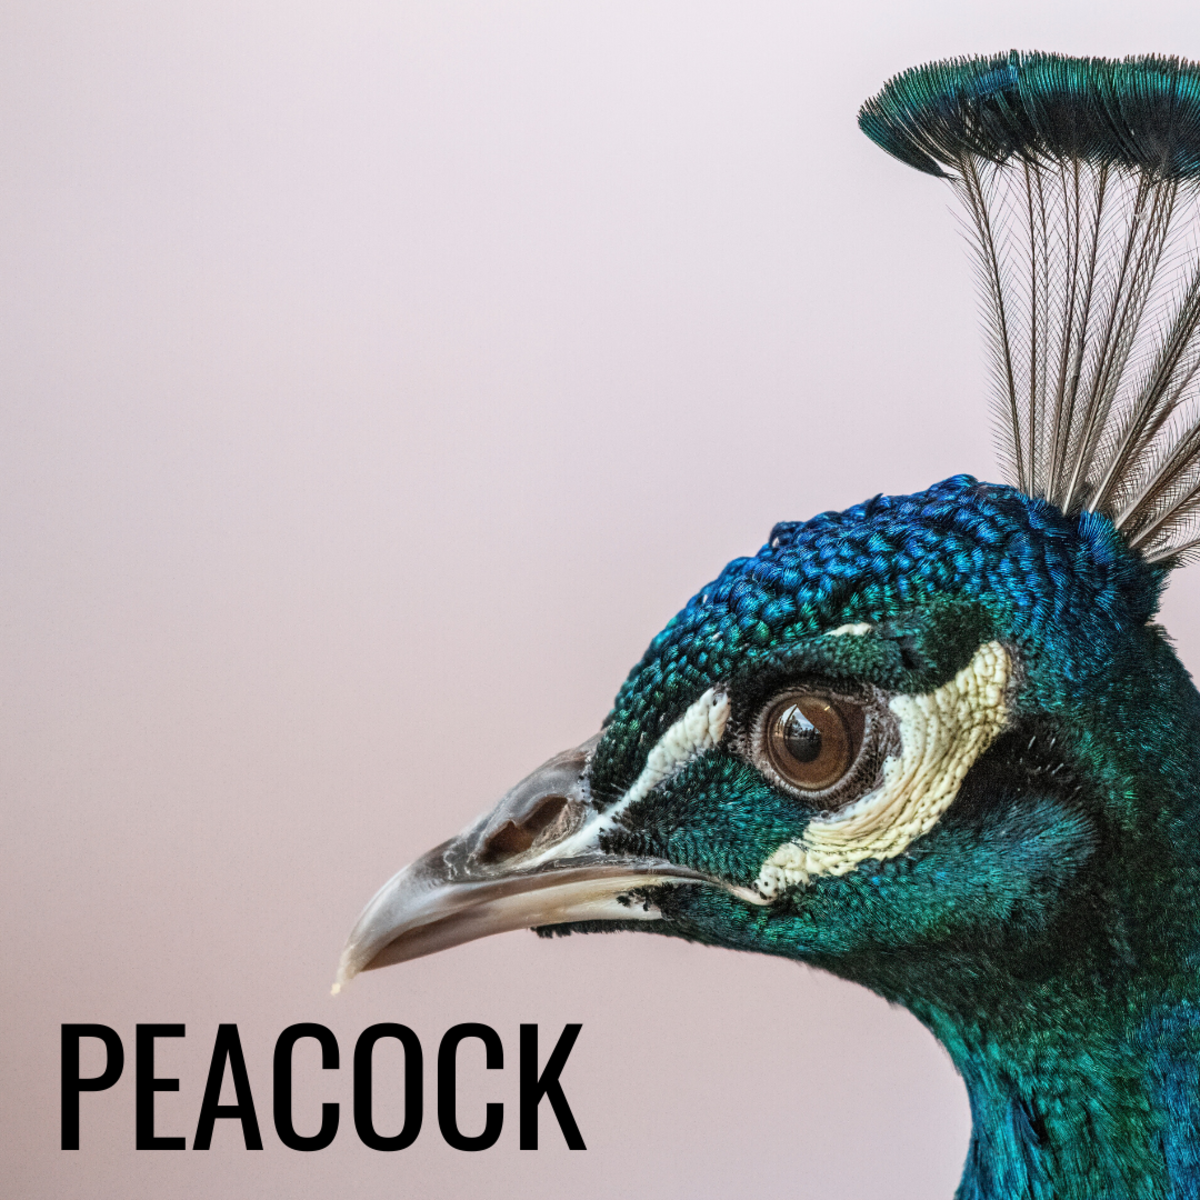 Peacocks can represent vanity but also beauty and purity.